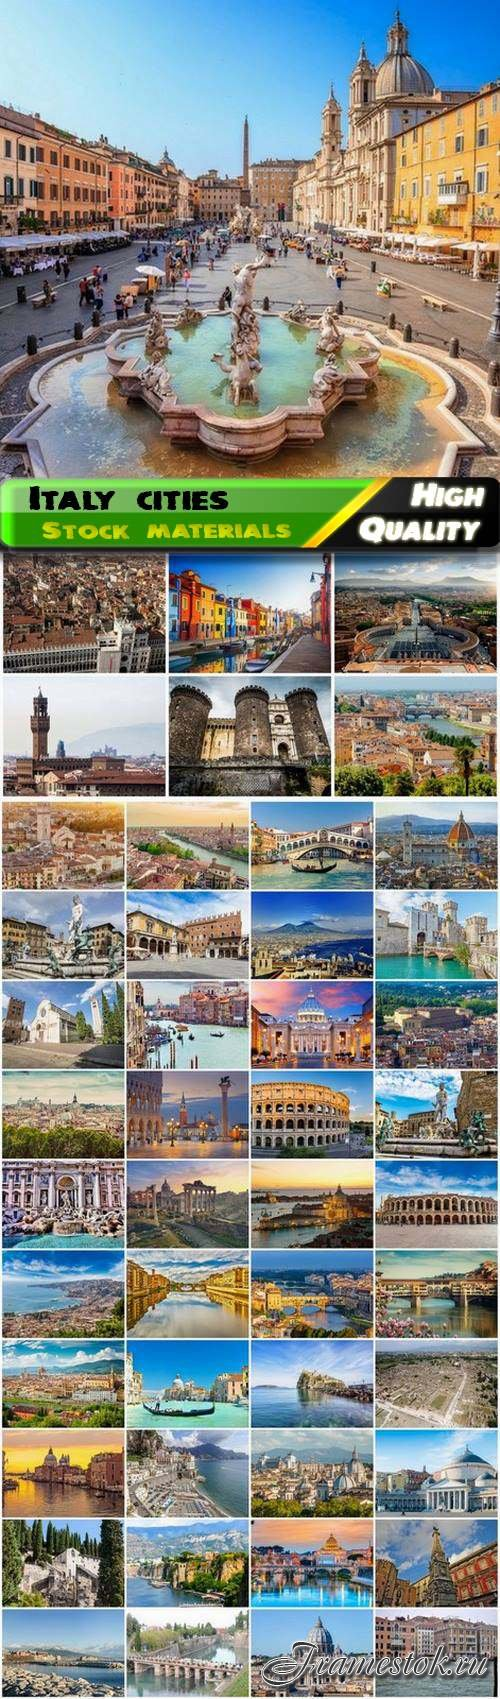 Famous Italy cities Florence Naples Rome Venice Verona 50 HQ Jpg